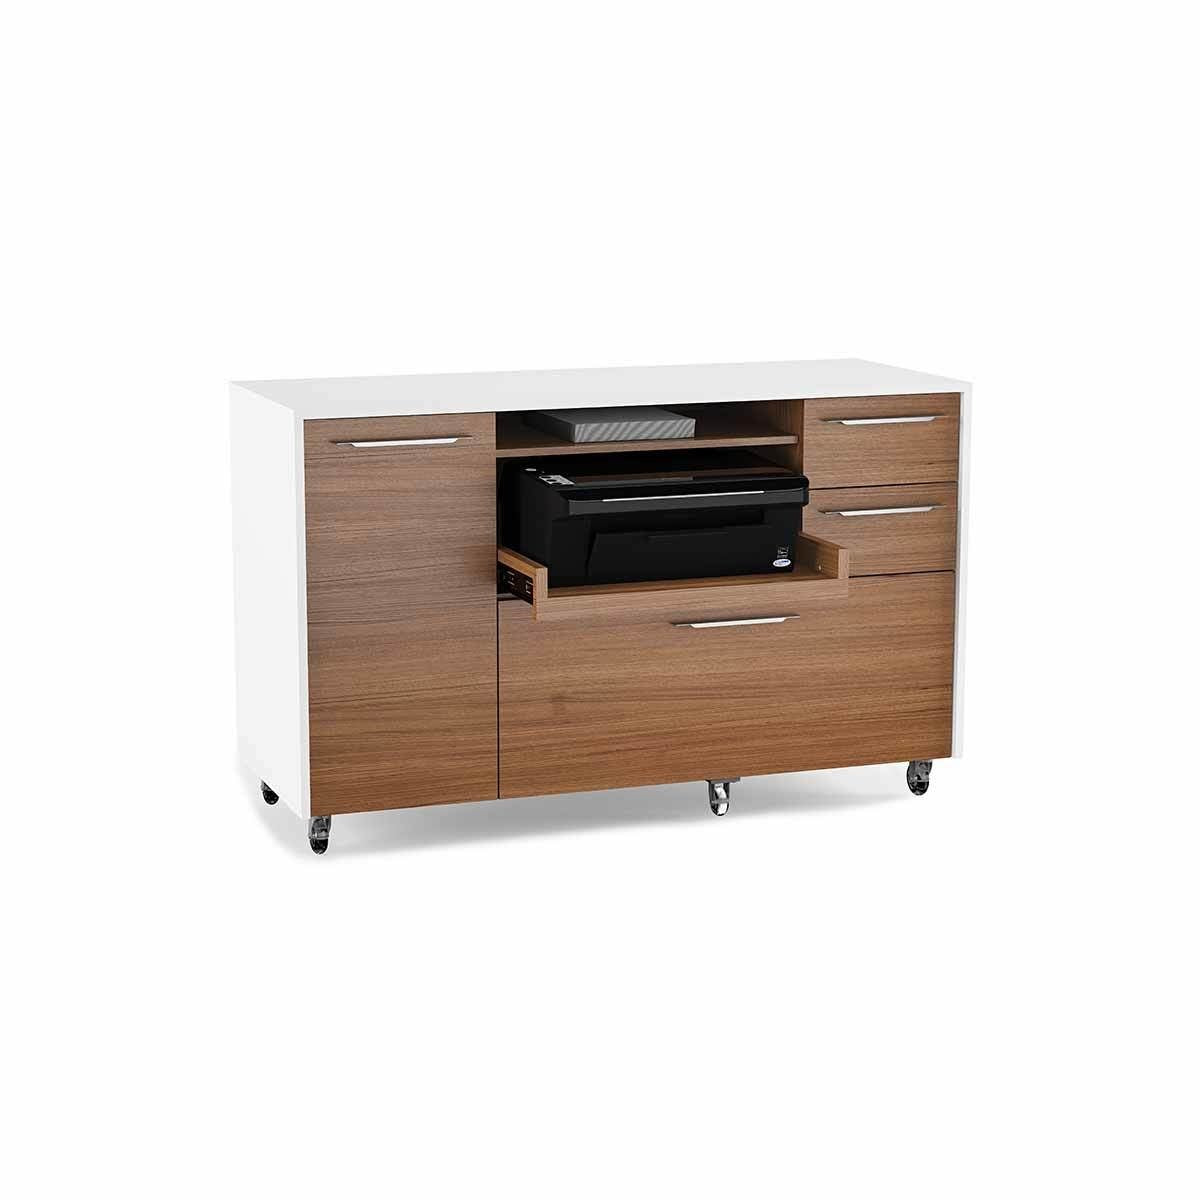 Format 6320 Multifunction File Cabinet